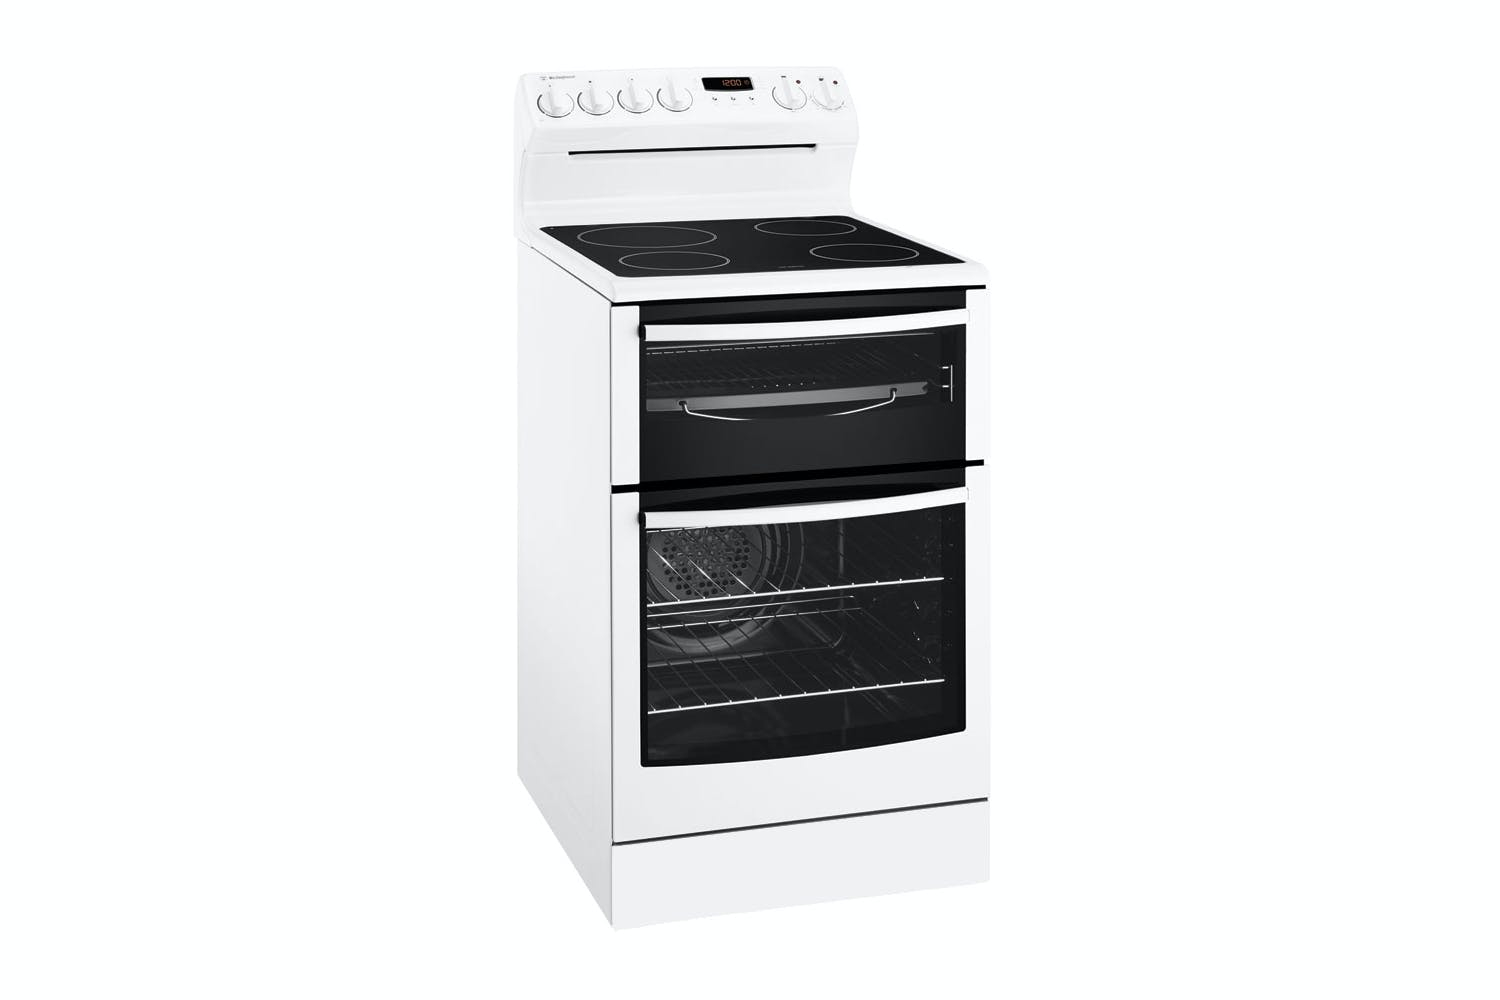 Westinghouse Kitchen Appliances Westinghouse 54cm Freestanding Oven With Separate Grill Harvey